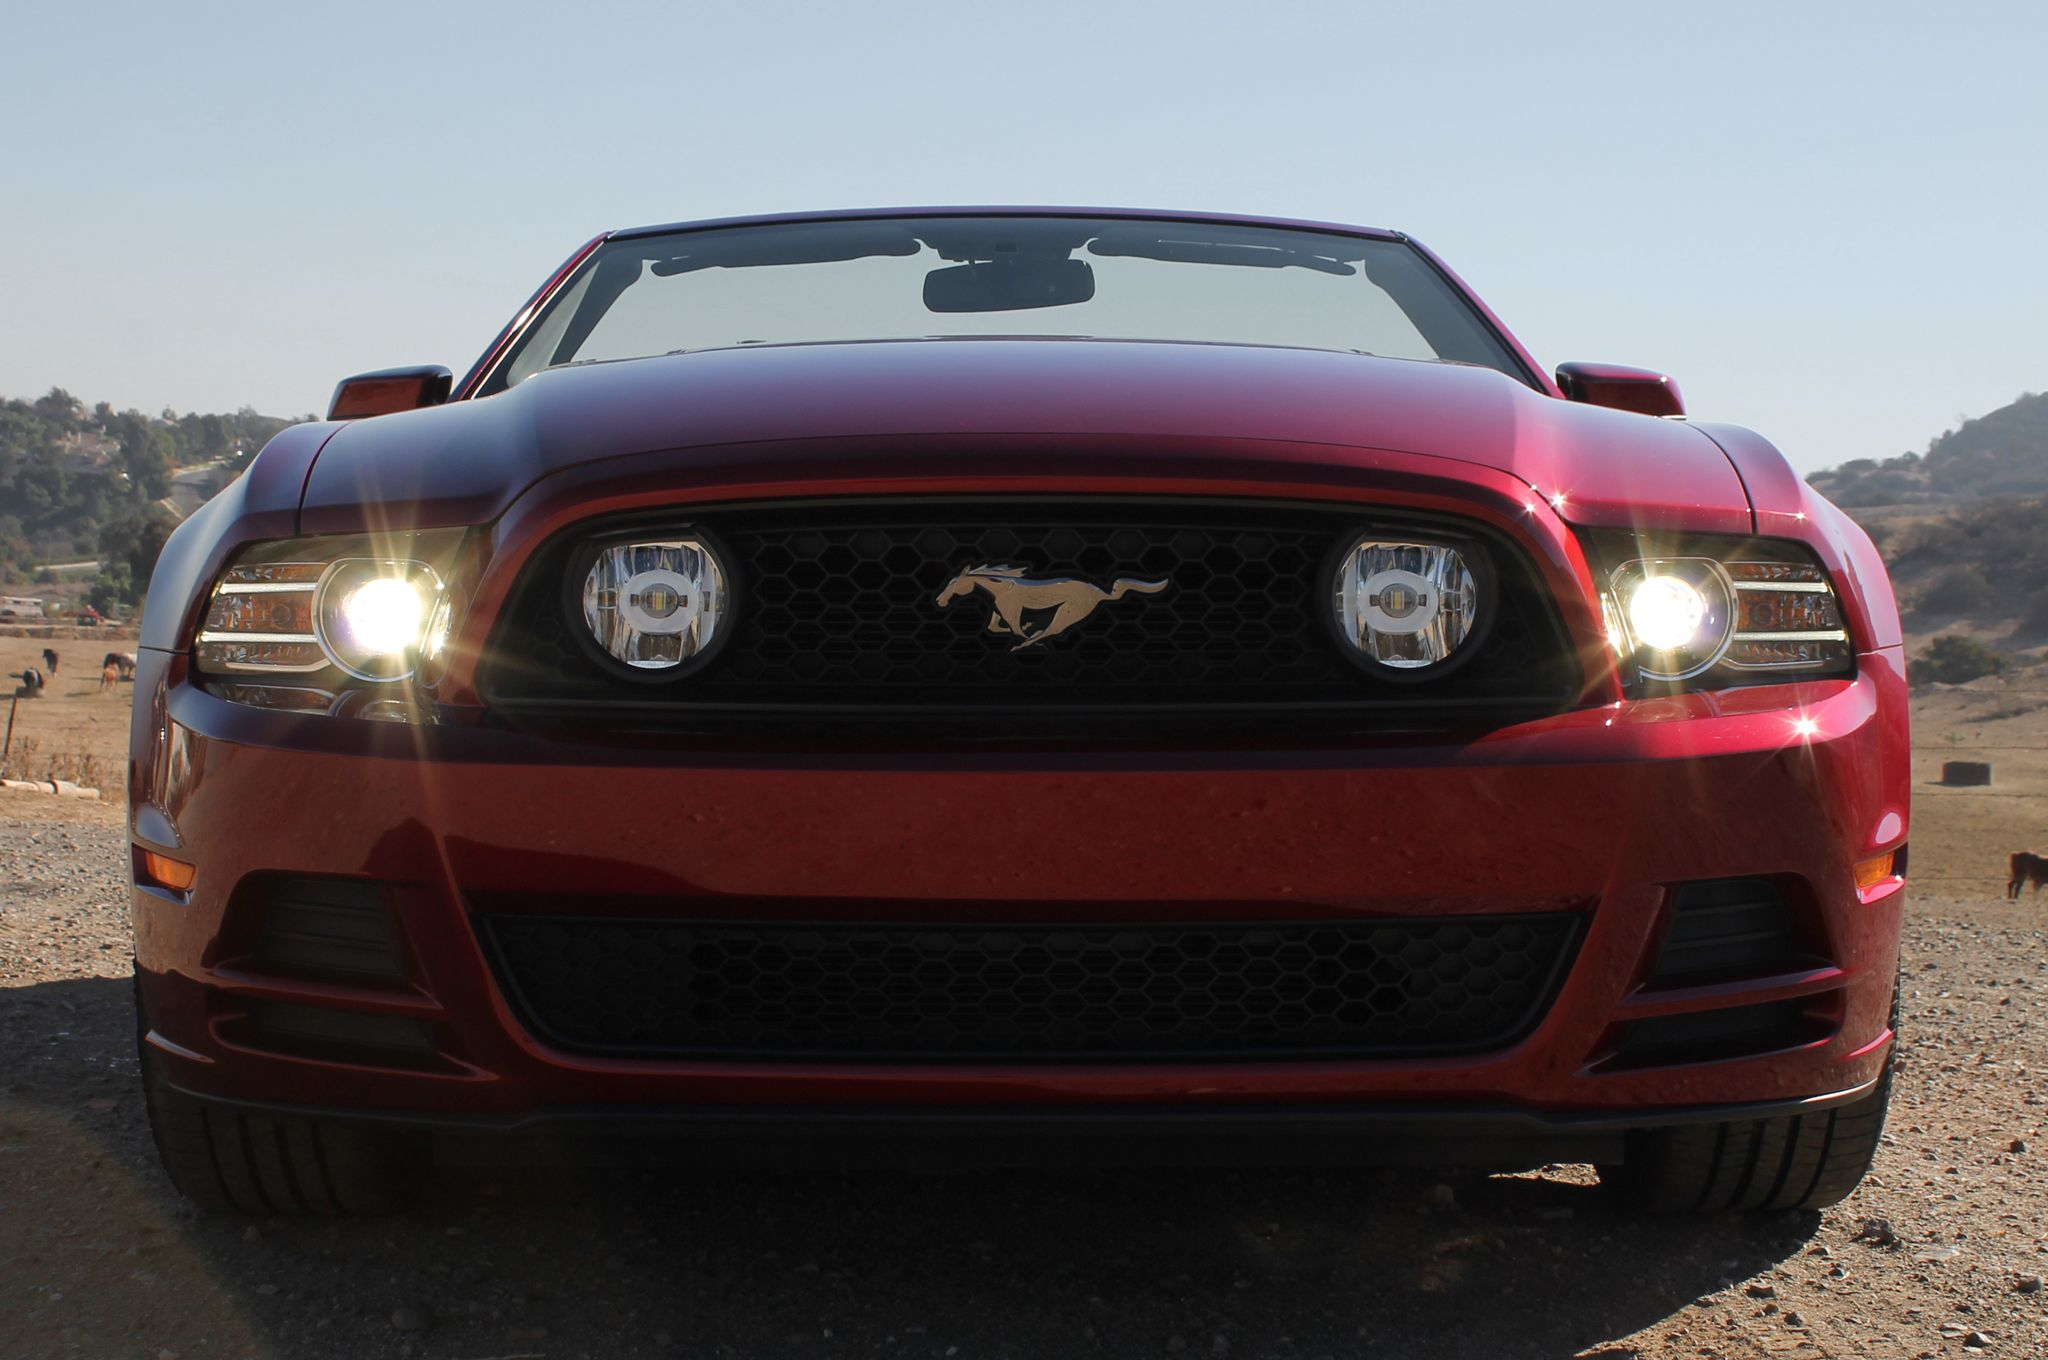 2014 ford mustang sedan 2014 ford mustang 4 door charger killer motor trend the artist s stuff to buy pinterest 2014 ford mustang ford